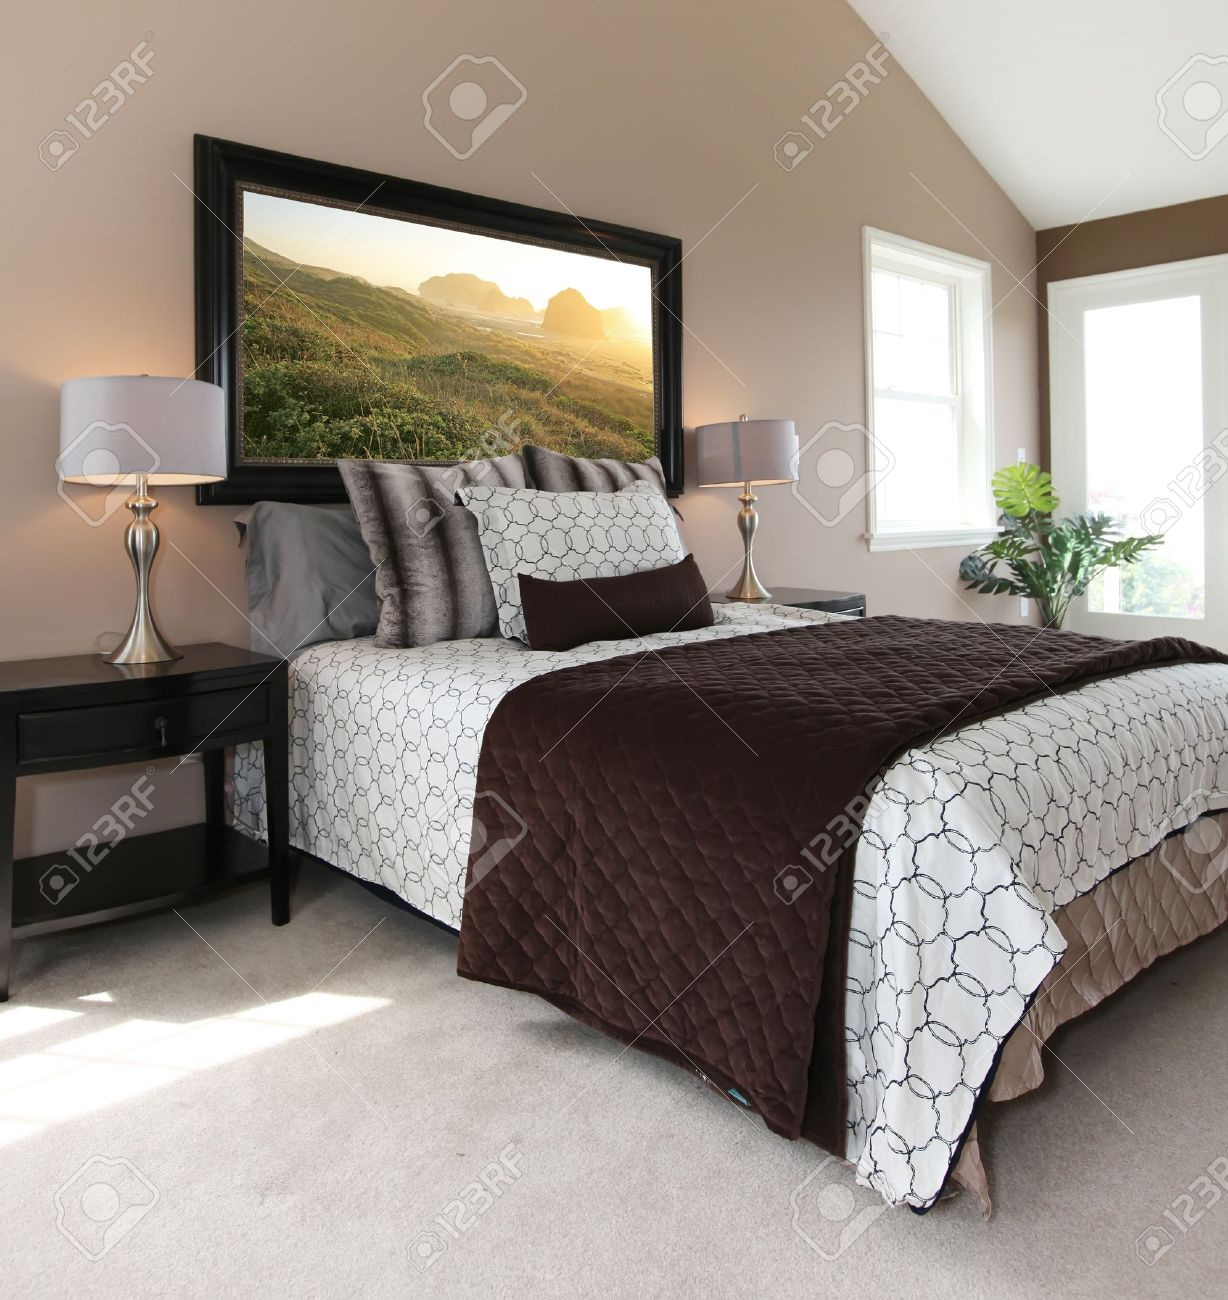 Bedroom With Modern White And Brown Bed And Nightstands Stock Photo Picture And Royalty Free Image Image 13888922